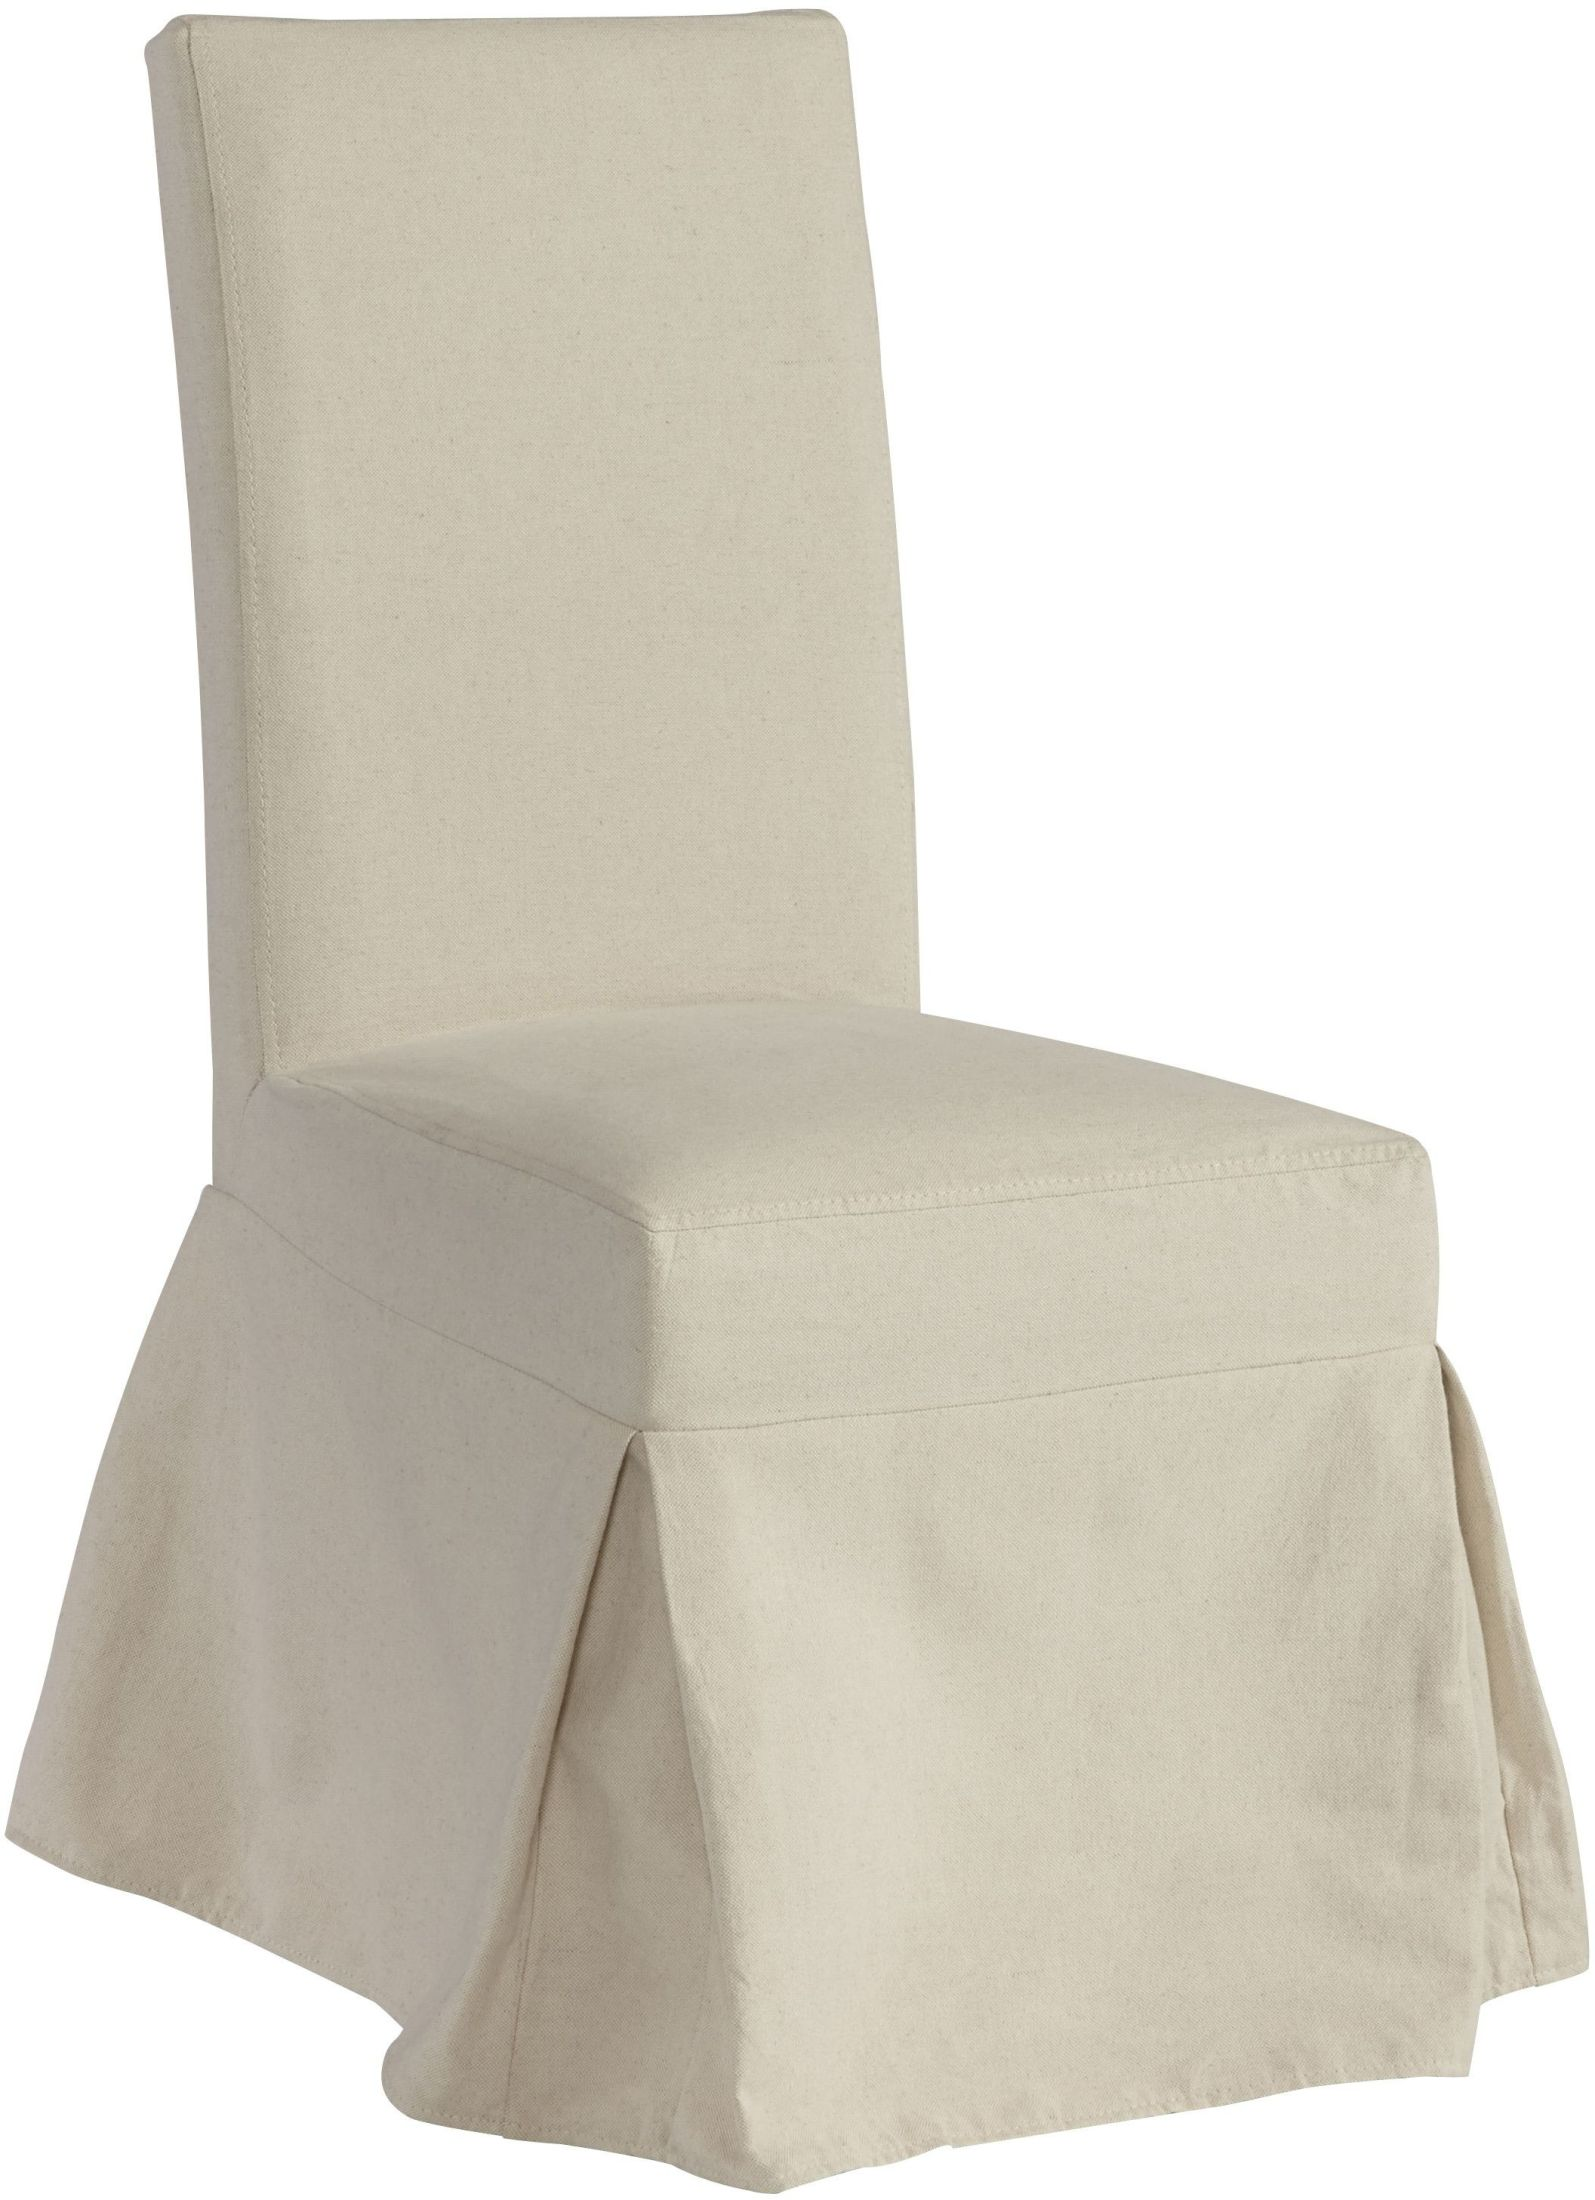 Dining Chair Slipcover Charlotte Off White Dining Chair Slipcover Set Of 2